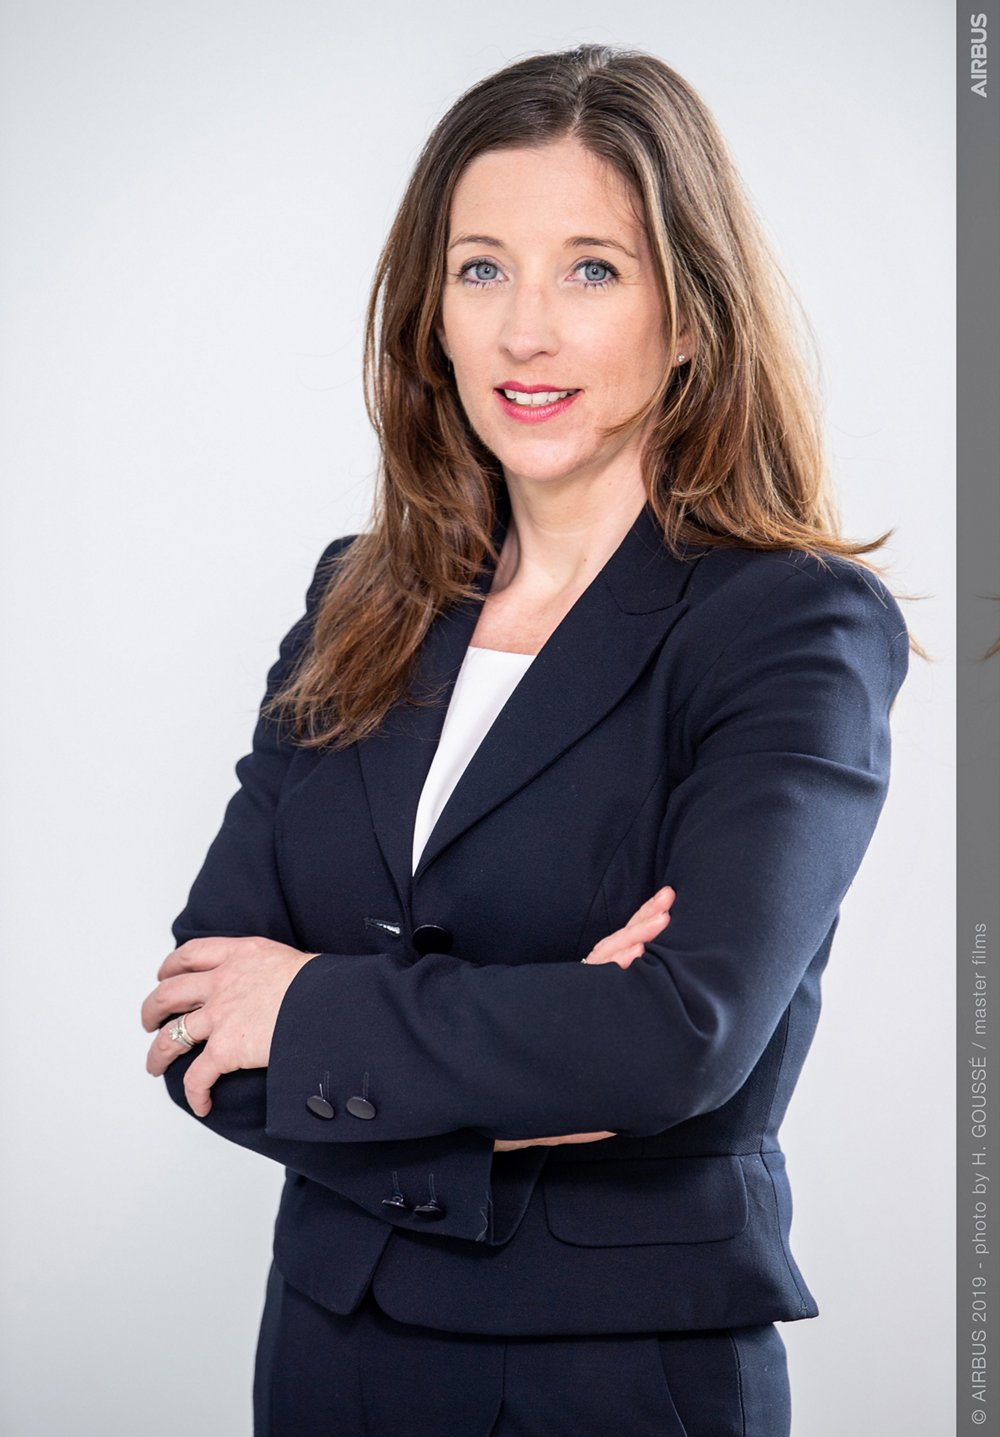 Photo of Julie Kitcher, Airbus EVP Communications and Corporate Affairs and a member of the Executive Committee.